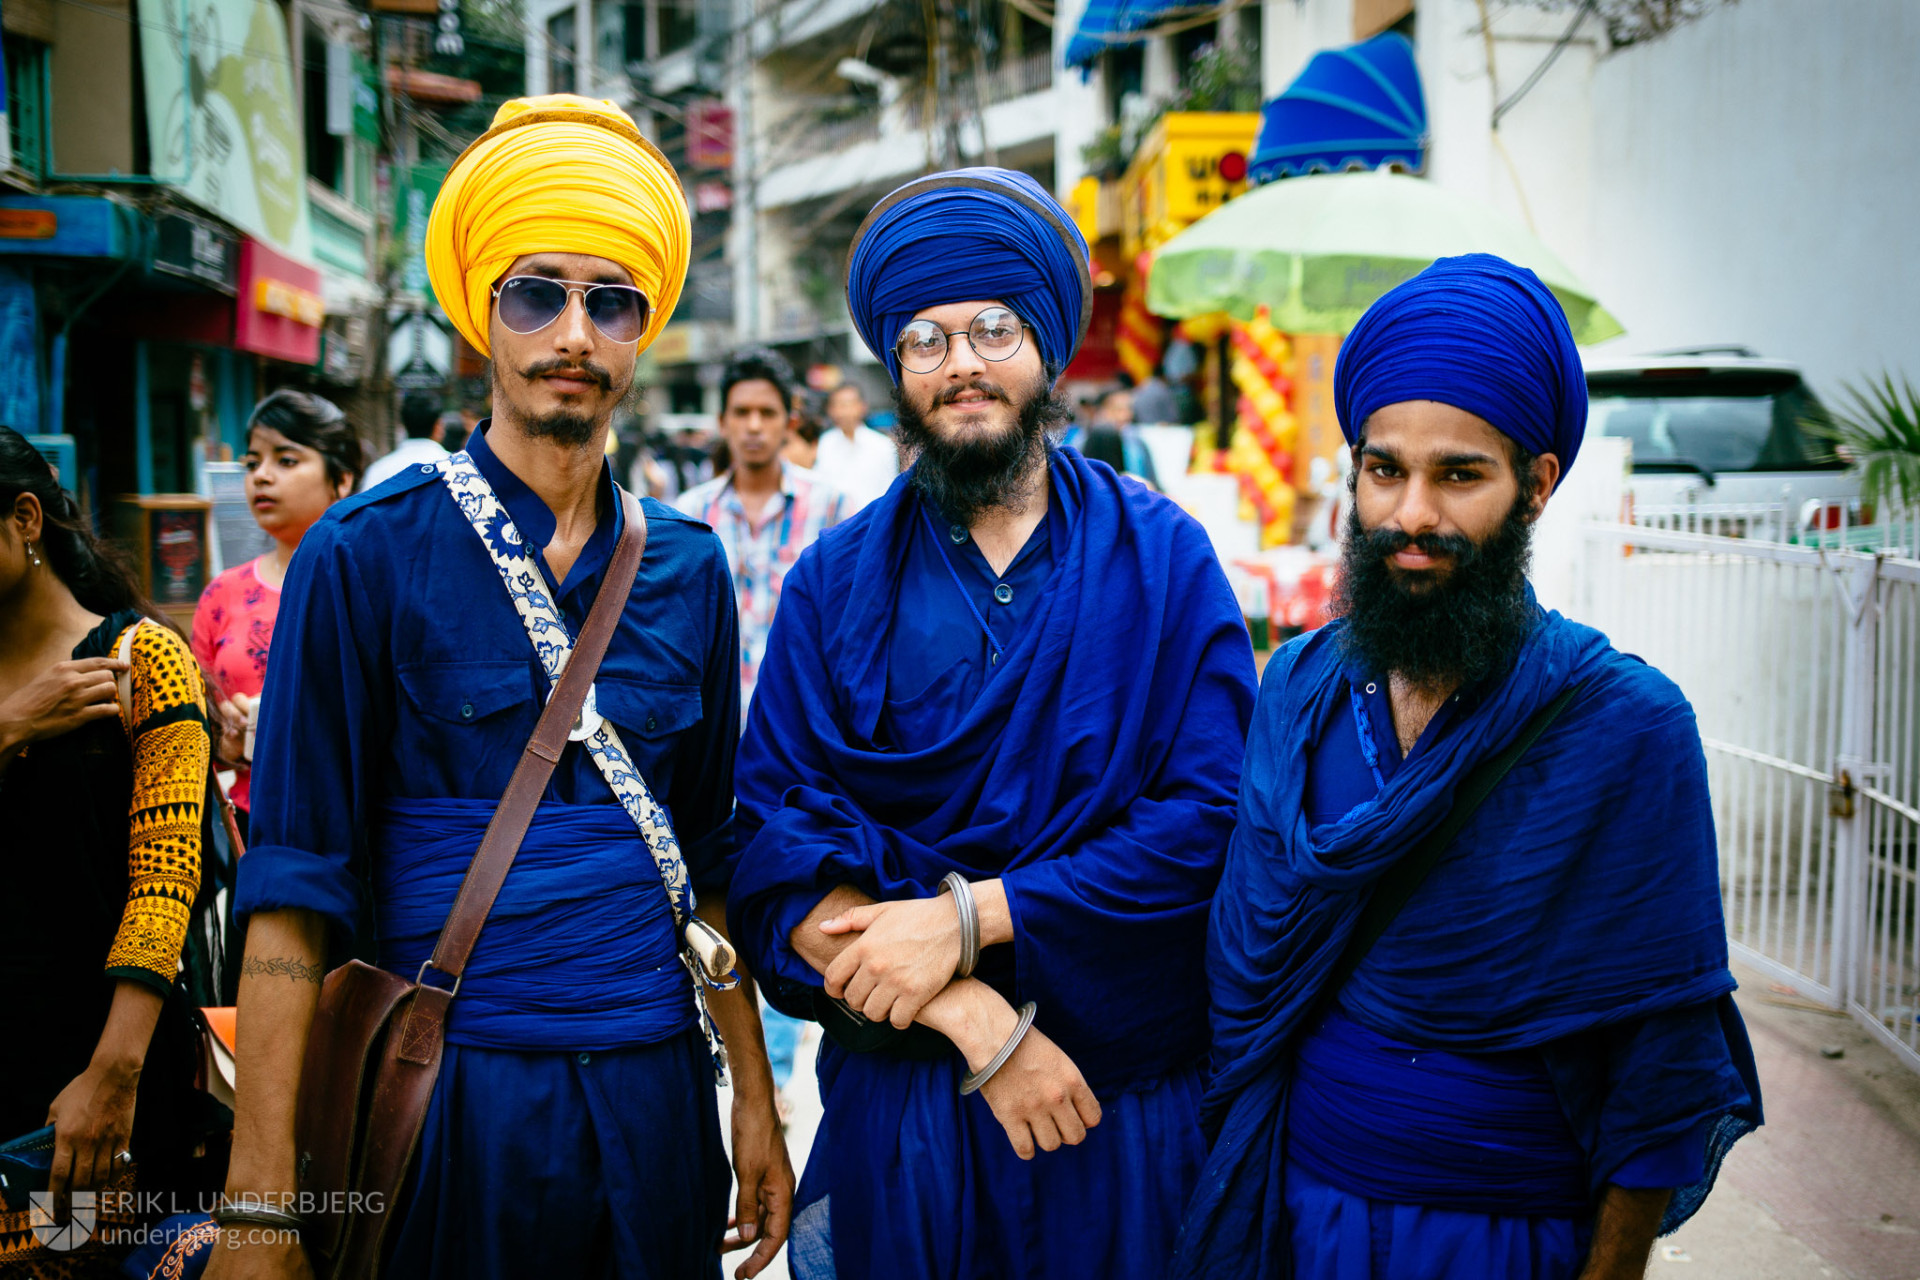 Cool Sikhs in New Delhi